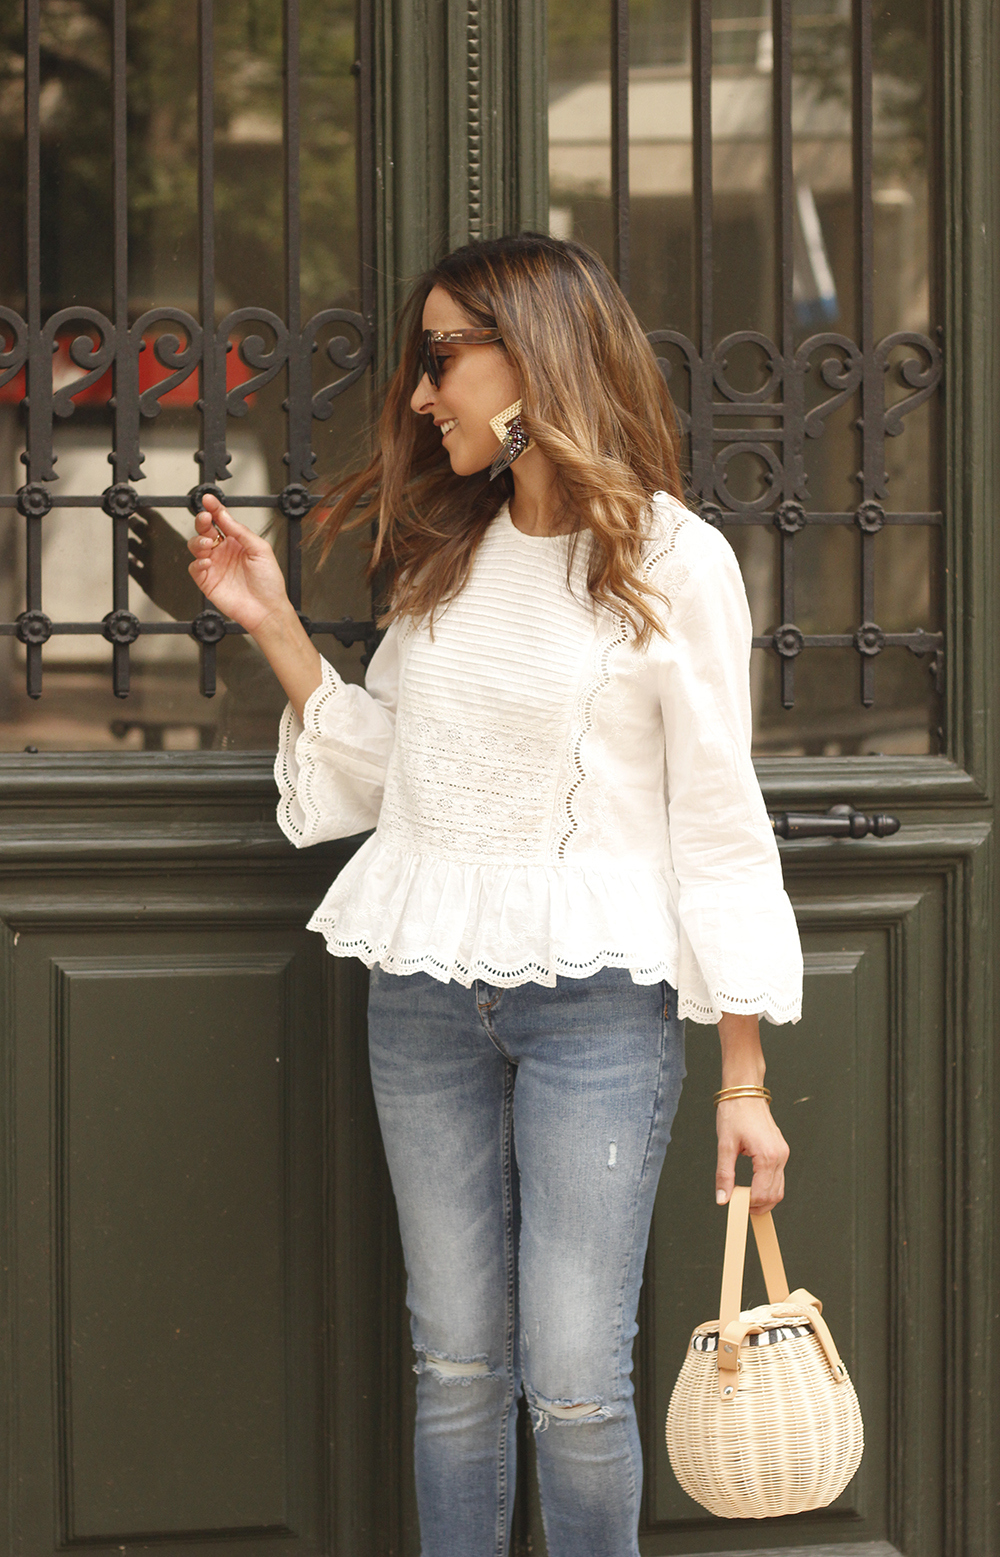 polka dot kitten heels white blouse ripped jeans outfit girl style fashion06